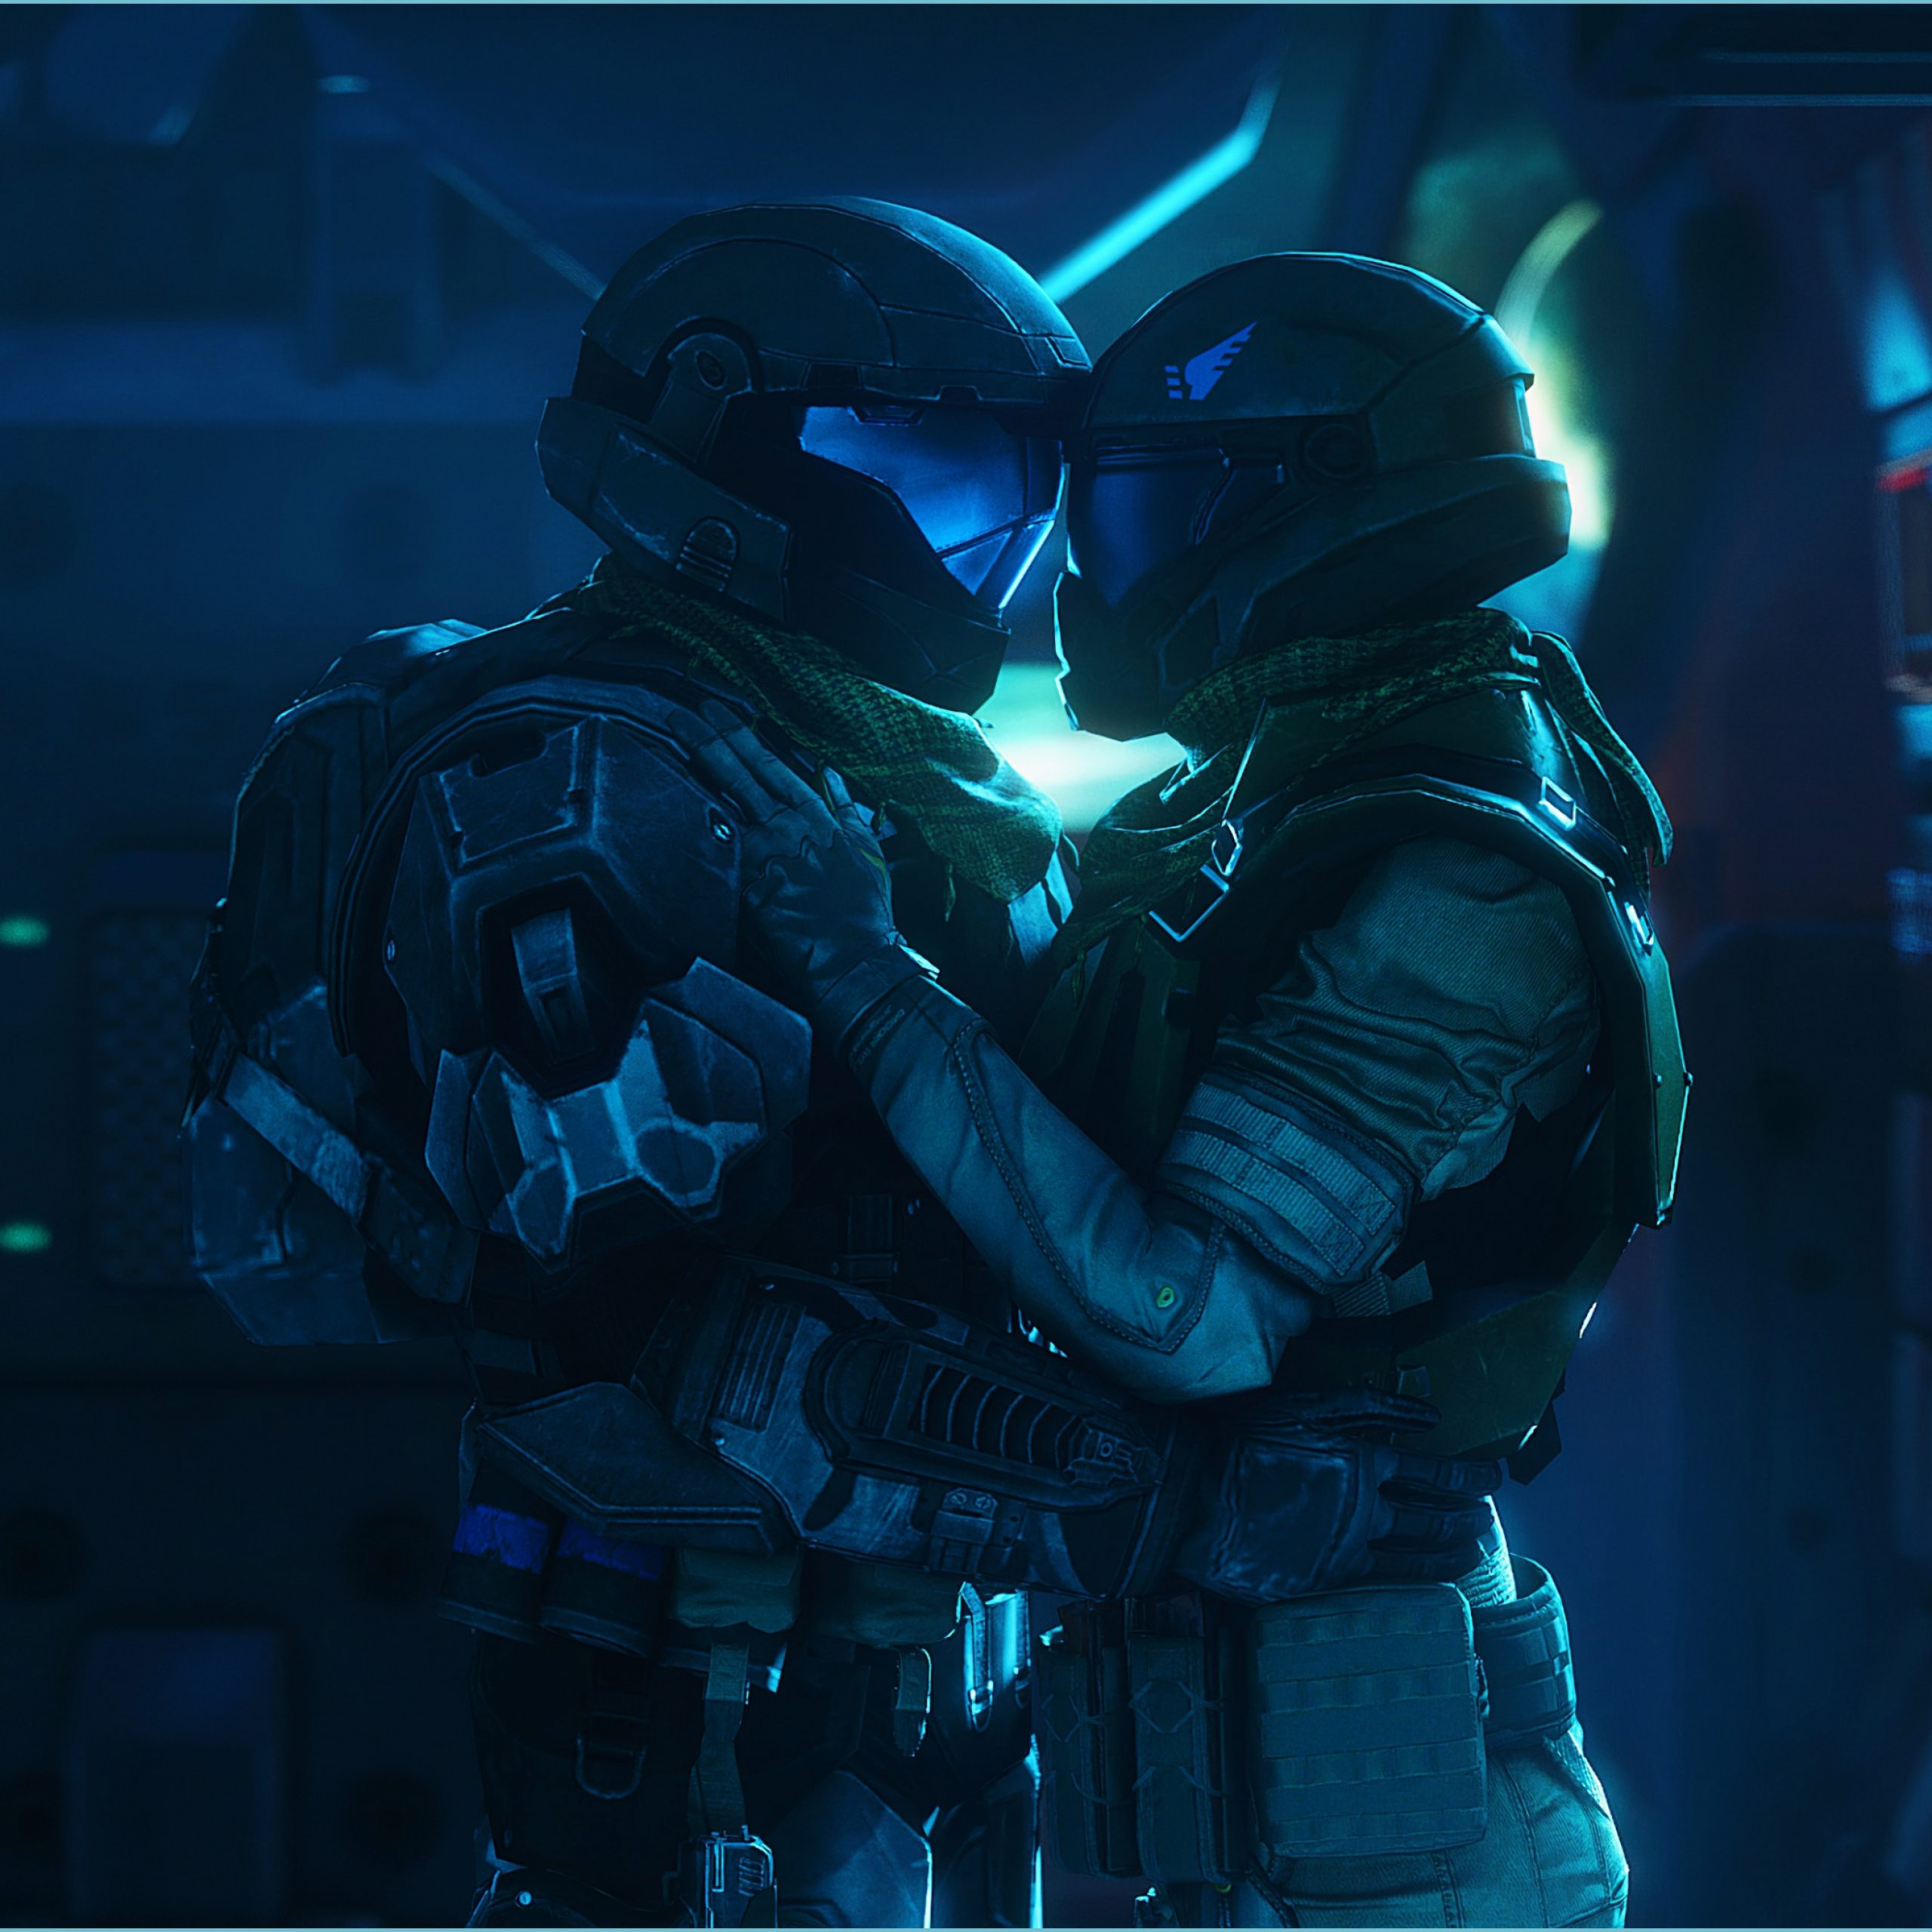 halo valentine day 13k hd games 13k wallpapers images halo wallpaper